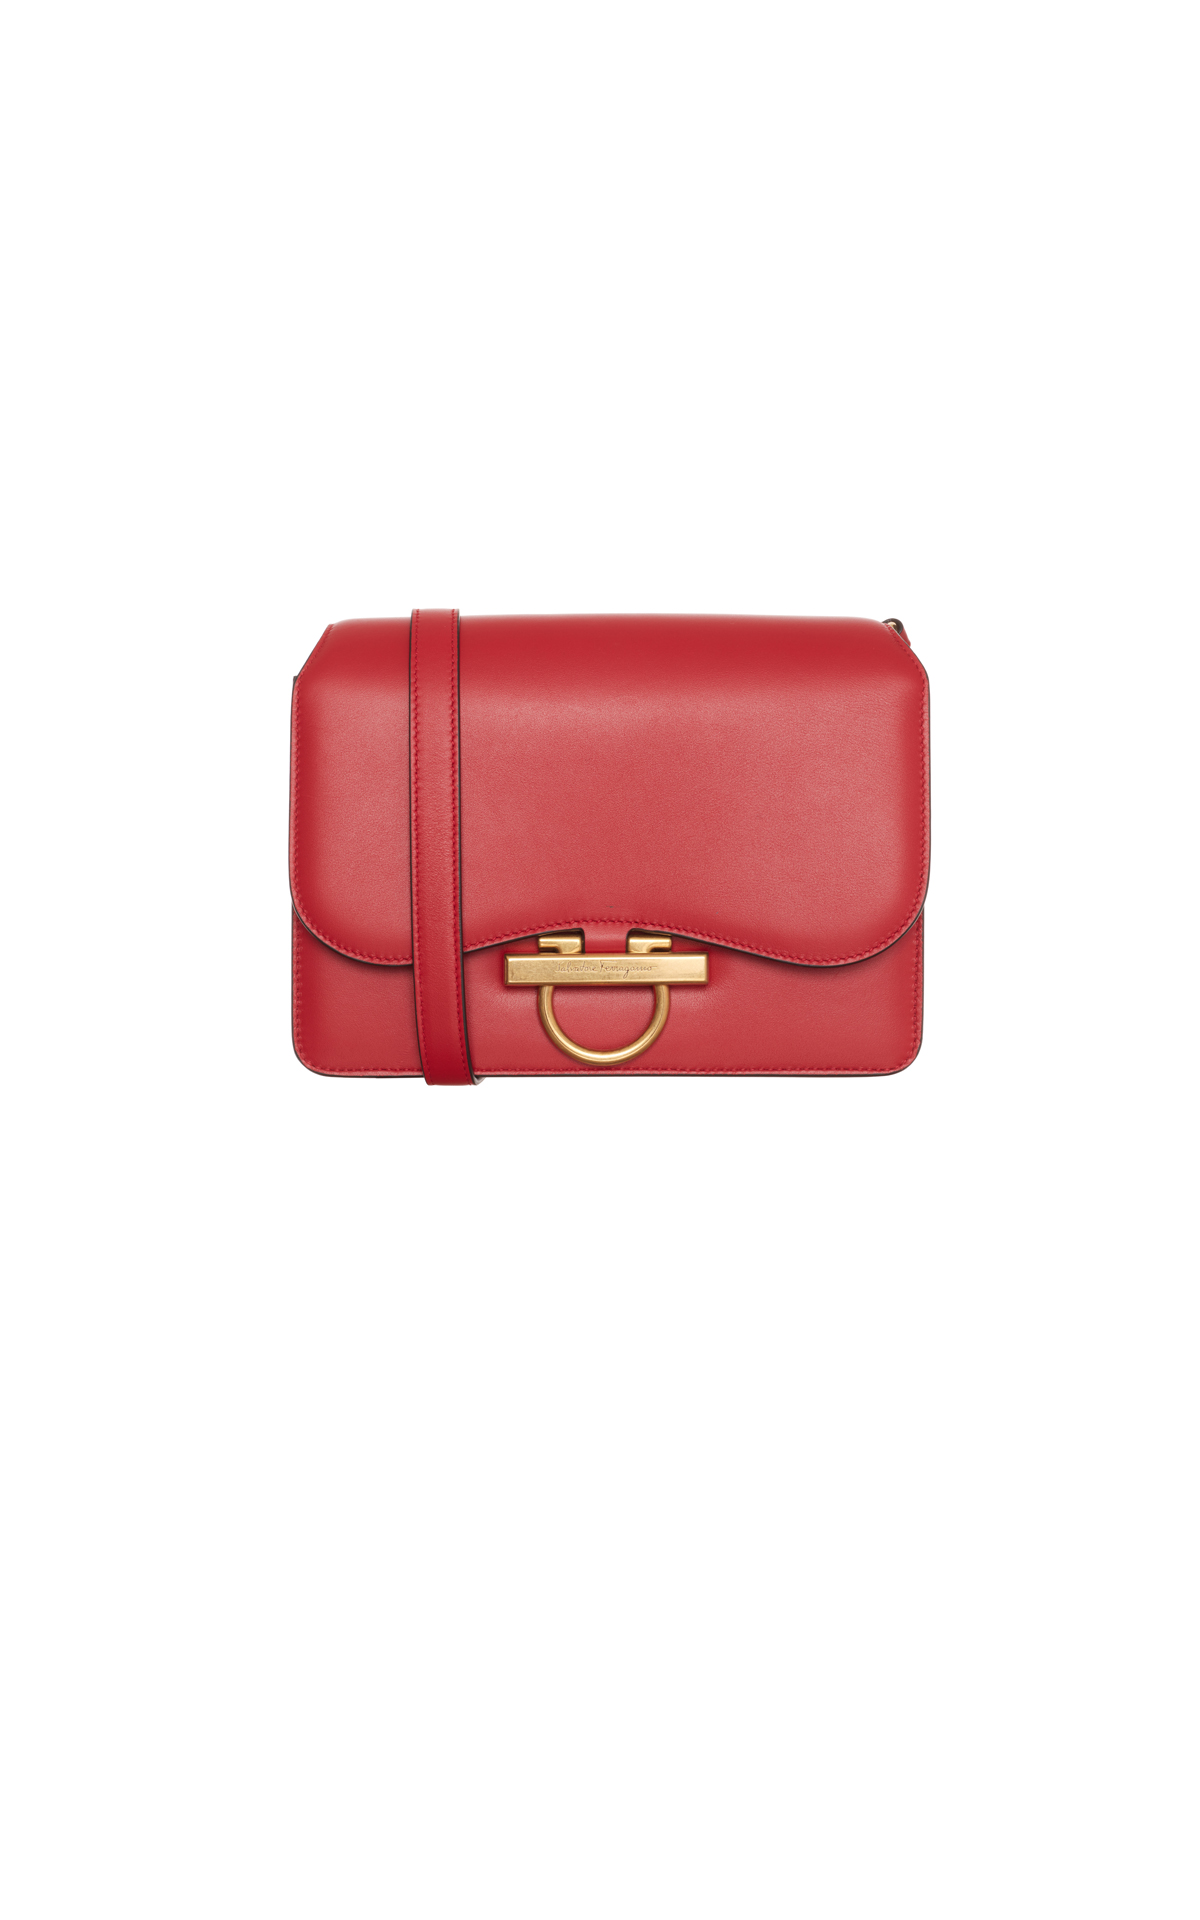 Salvatore Ferragamo Joanne flap bag from Bicester Village